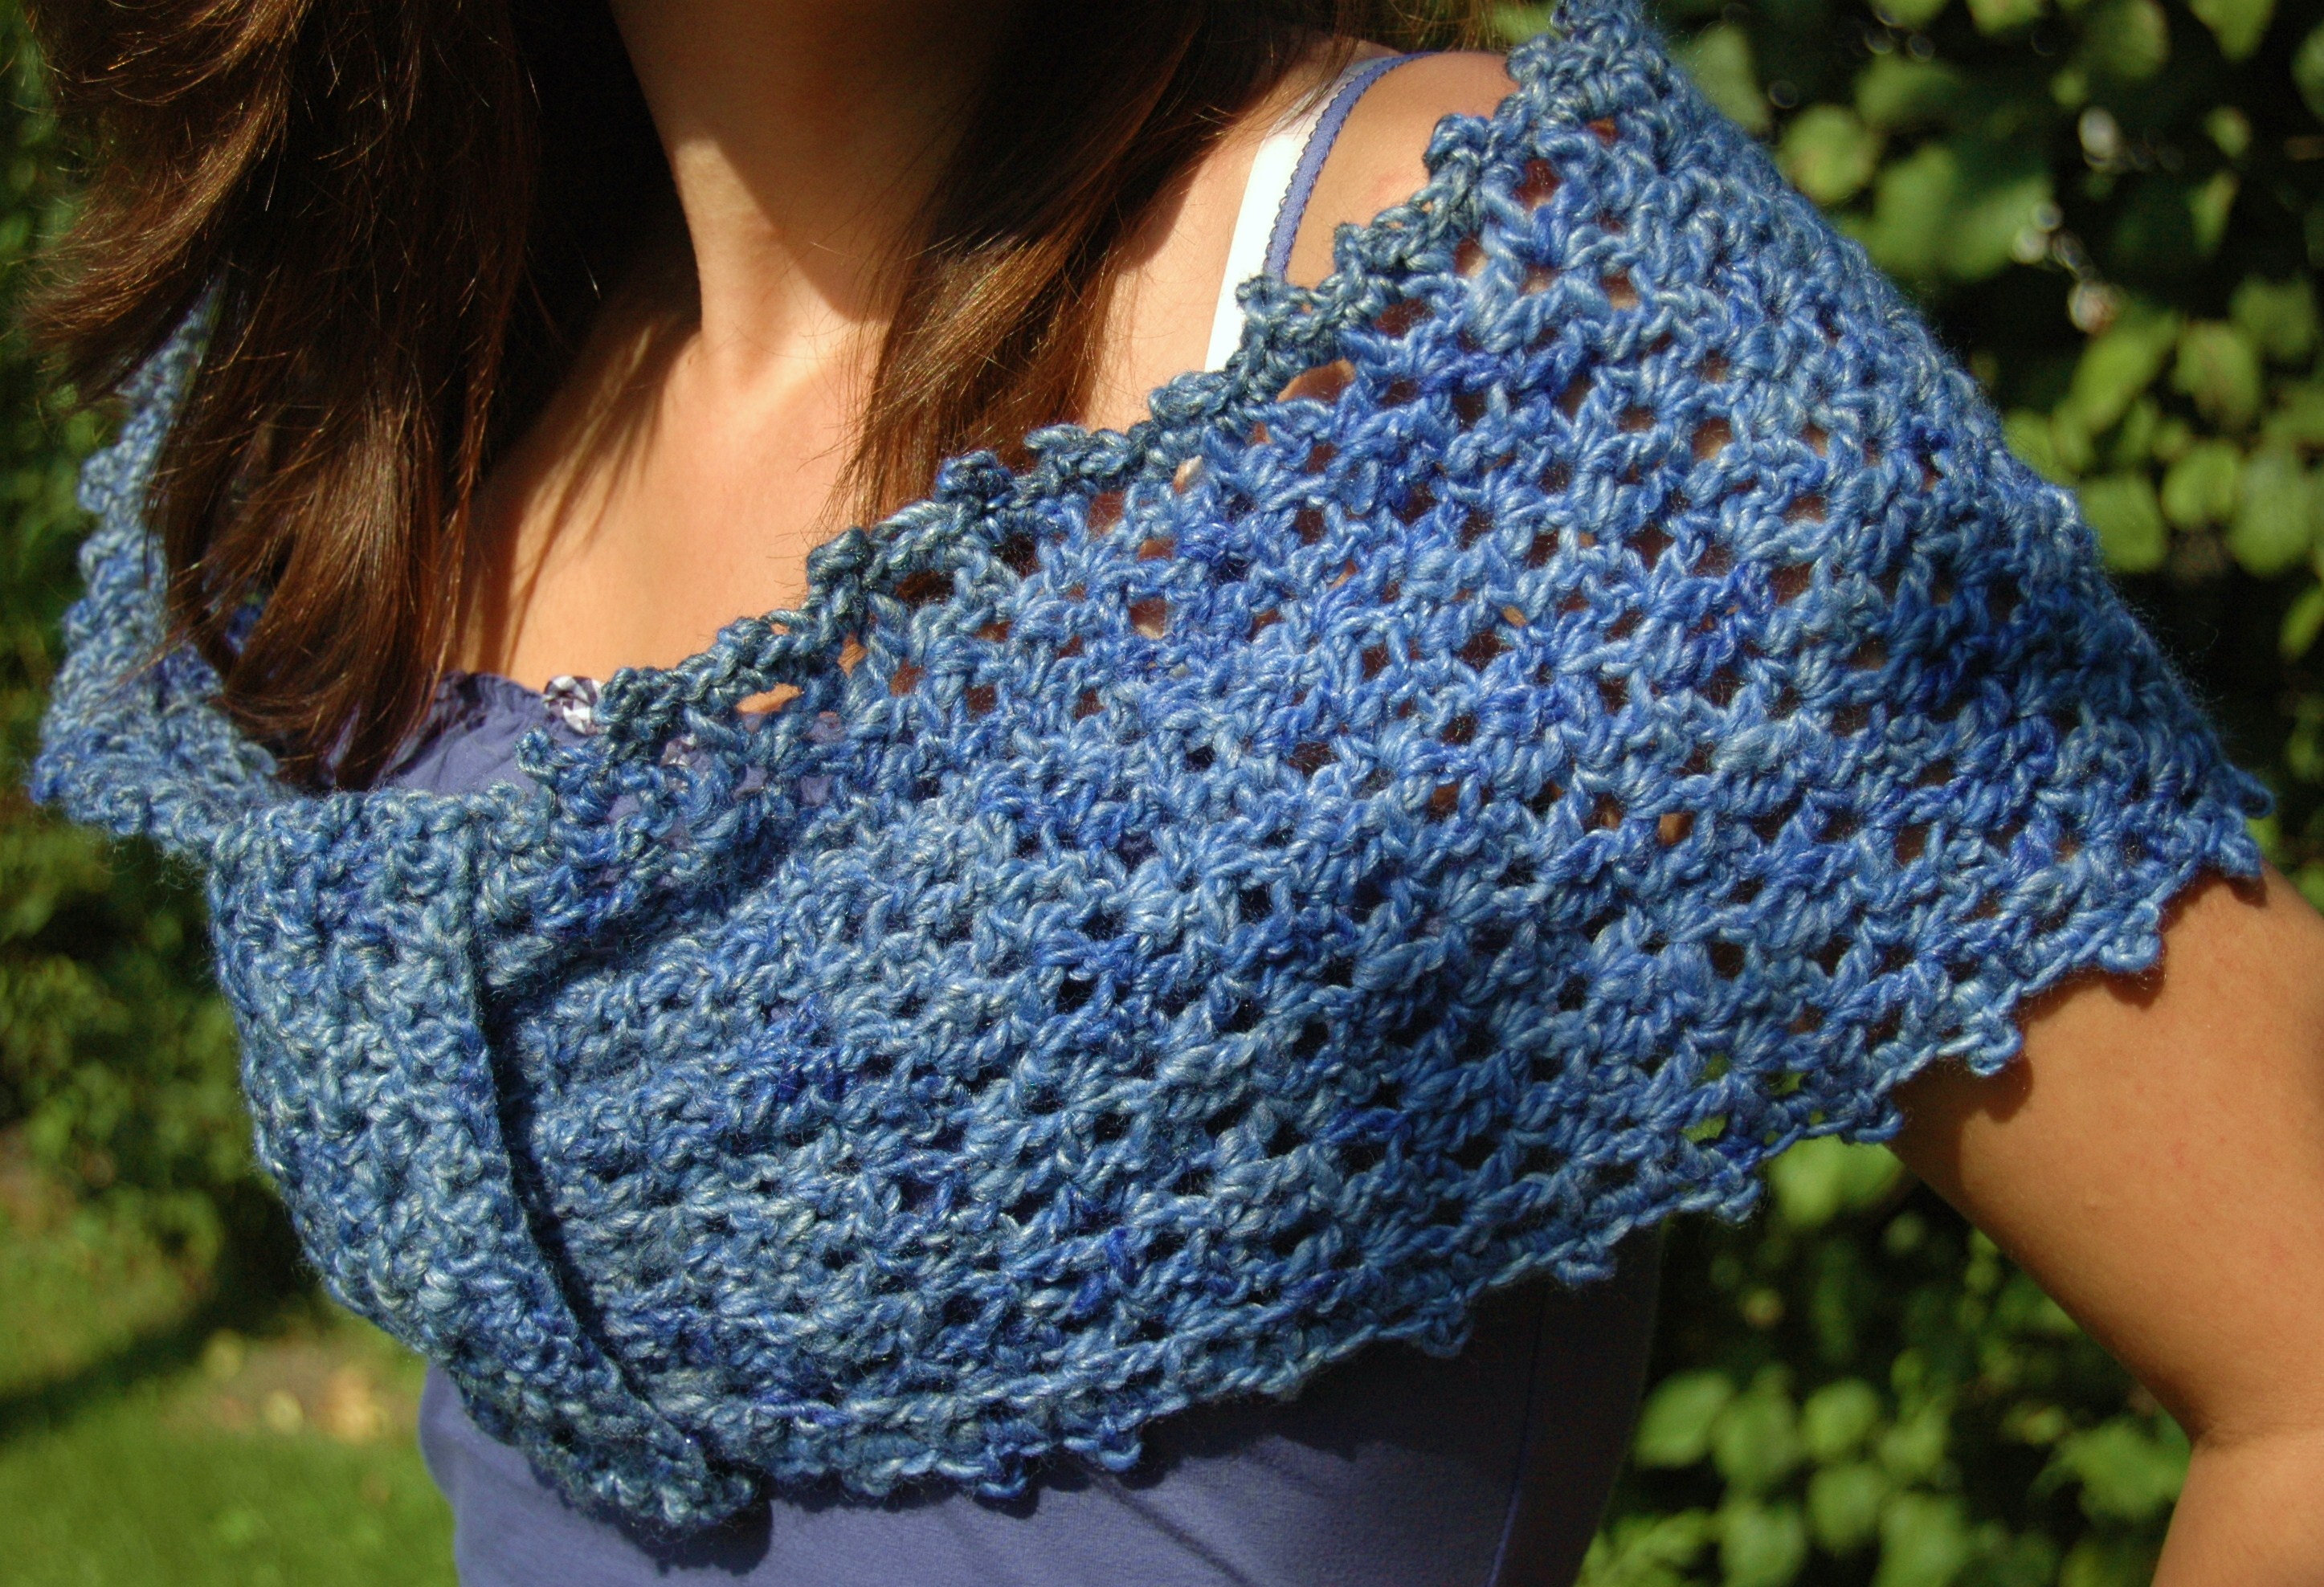 Crochet Wrap : Crochet Pattern Central - Free, Online Crochet Patterns - Beginner